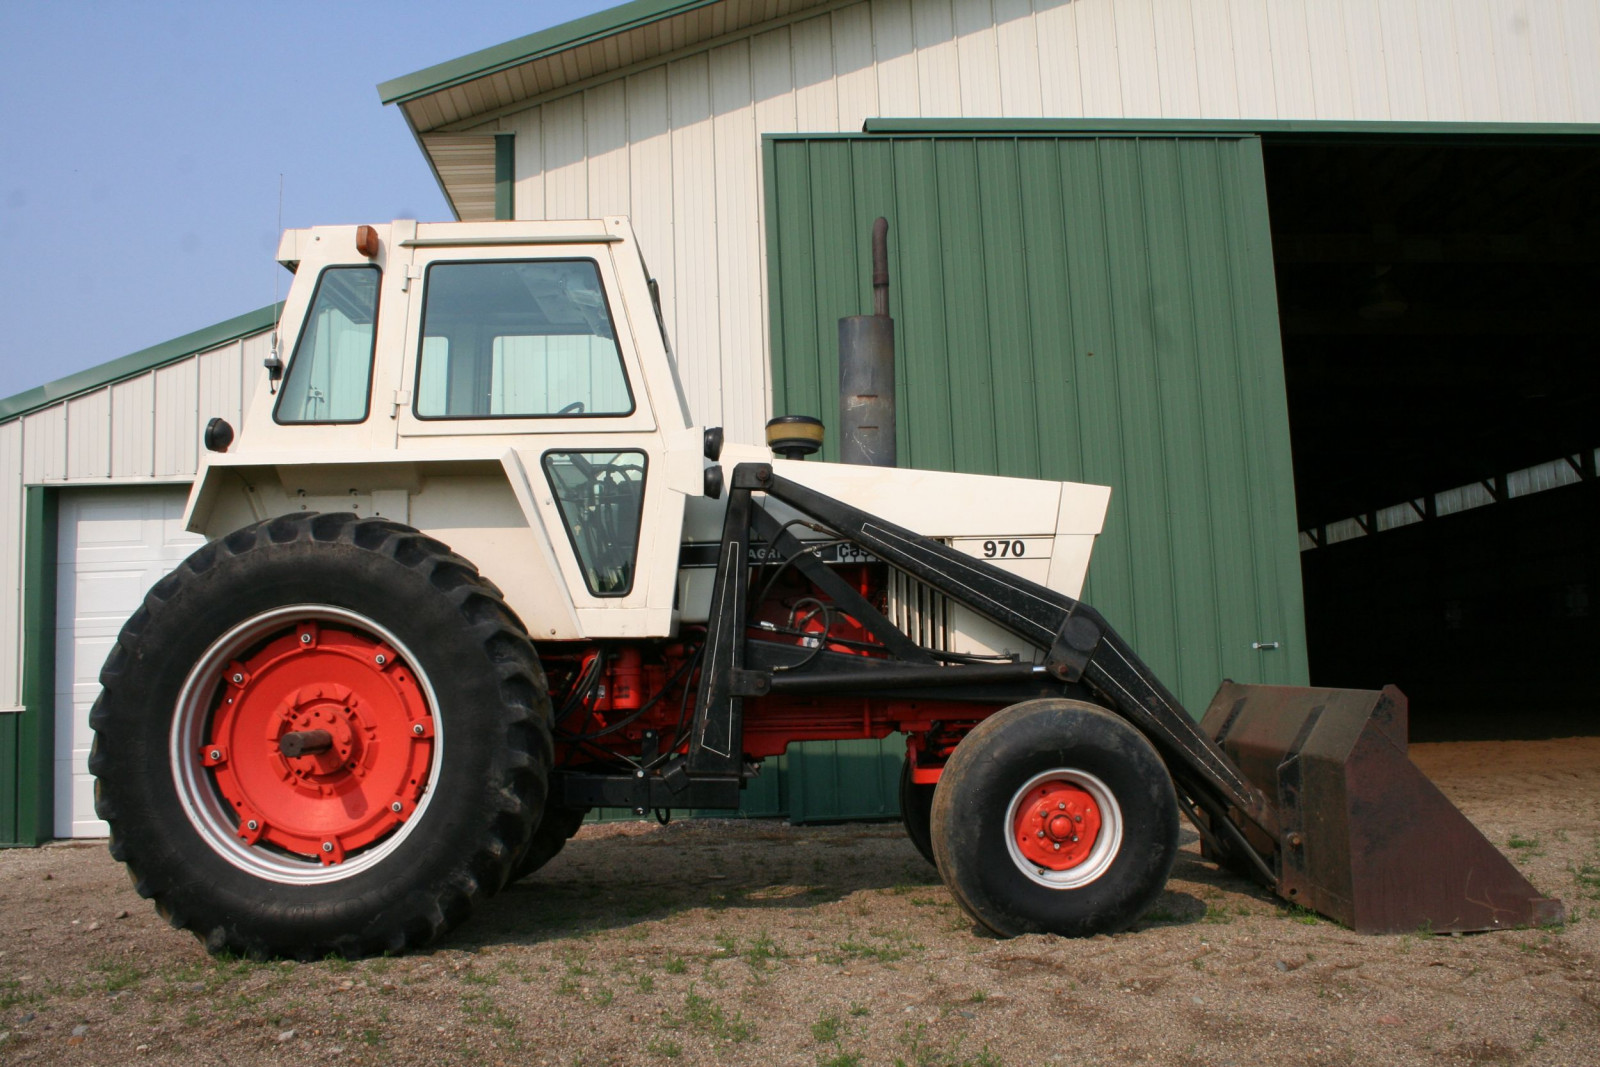 1978 Case 970 Tractor - Image 7